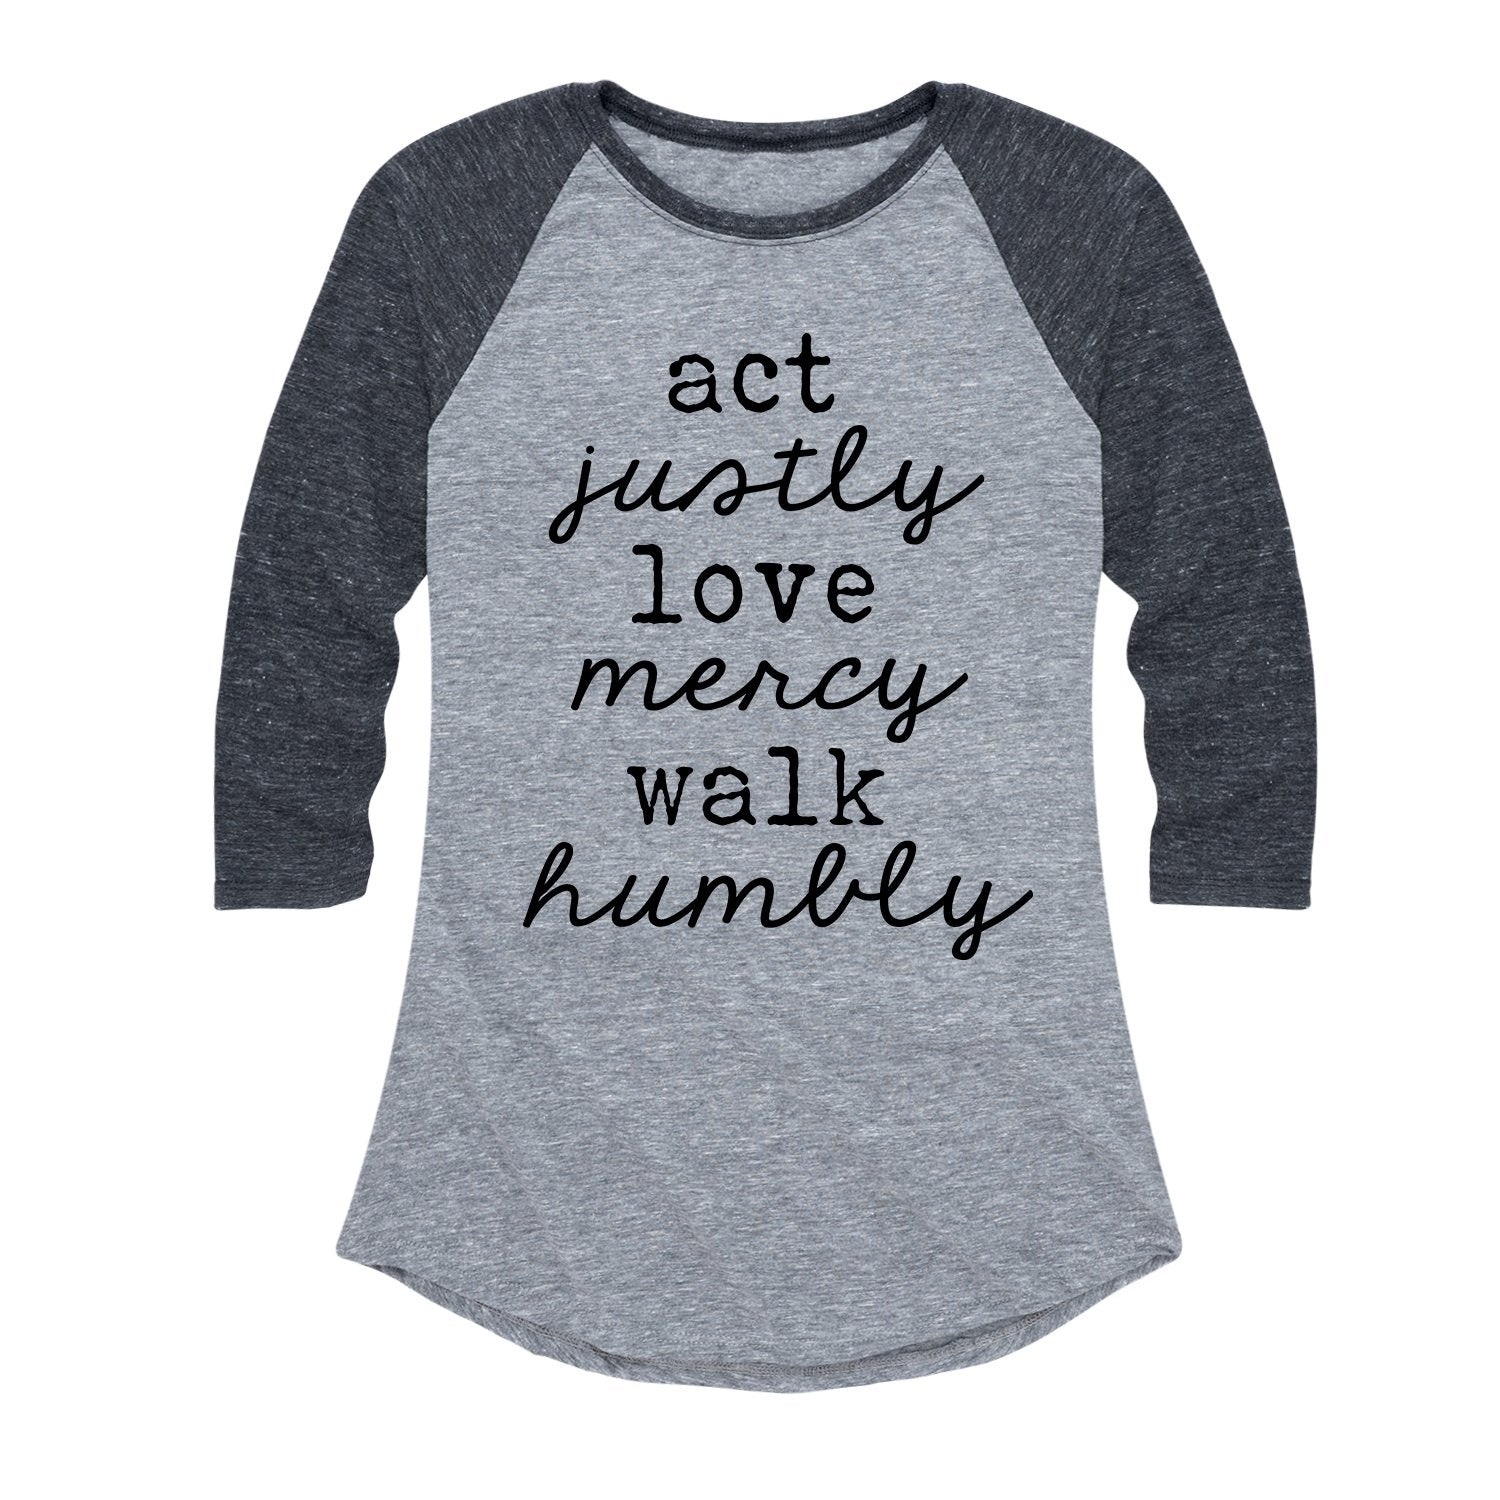 Self Care Women's Raglan Tee Tshirt